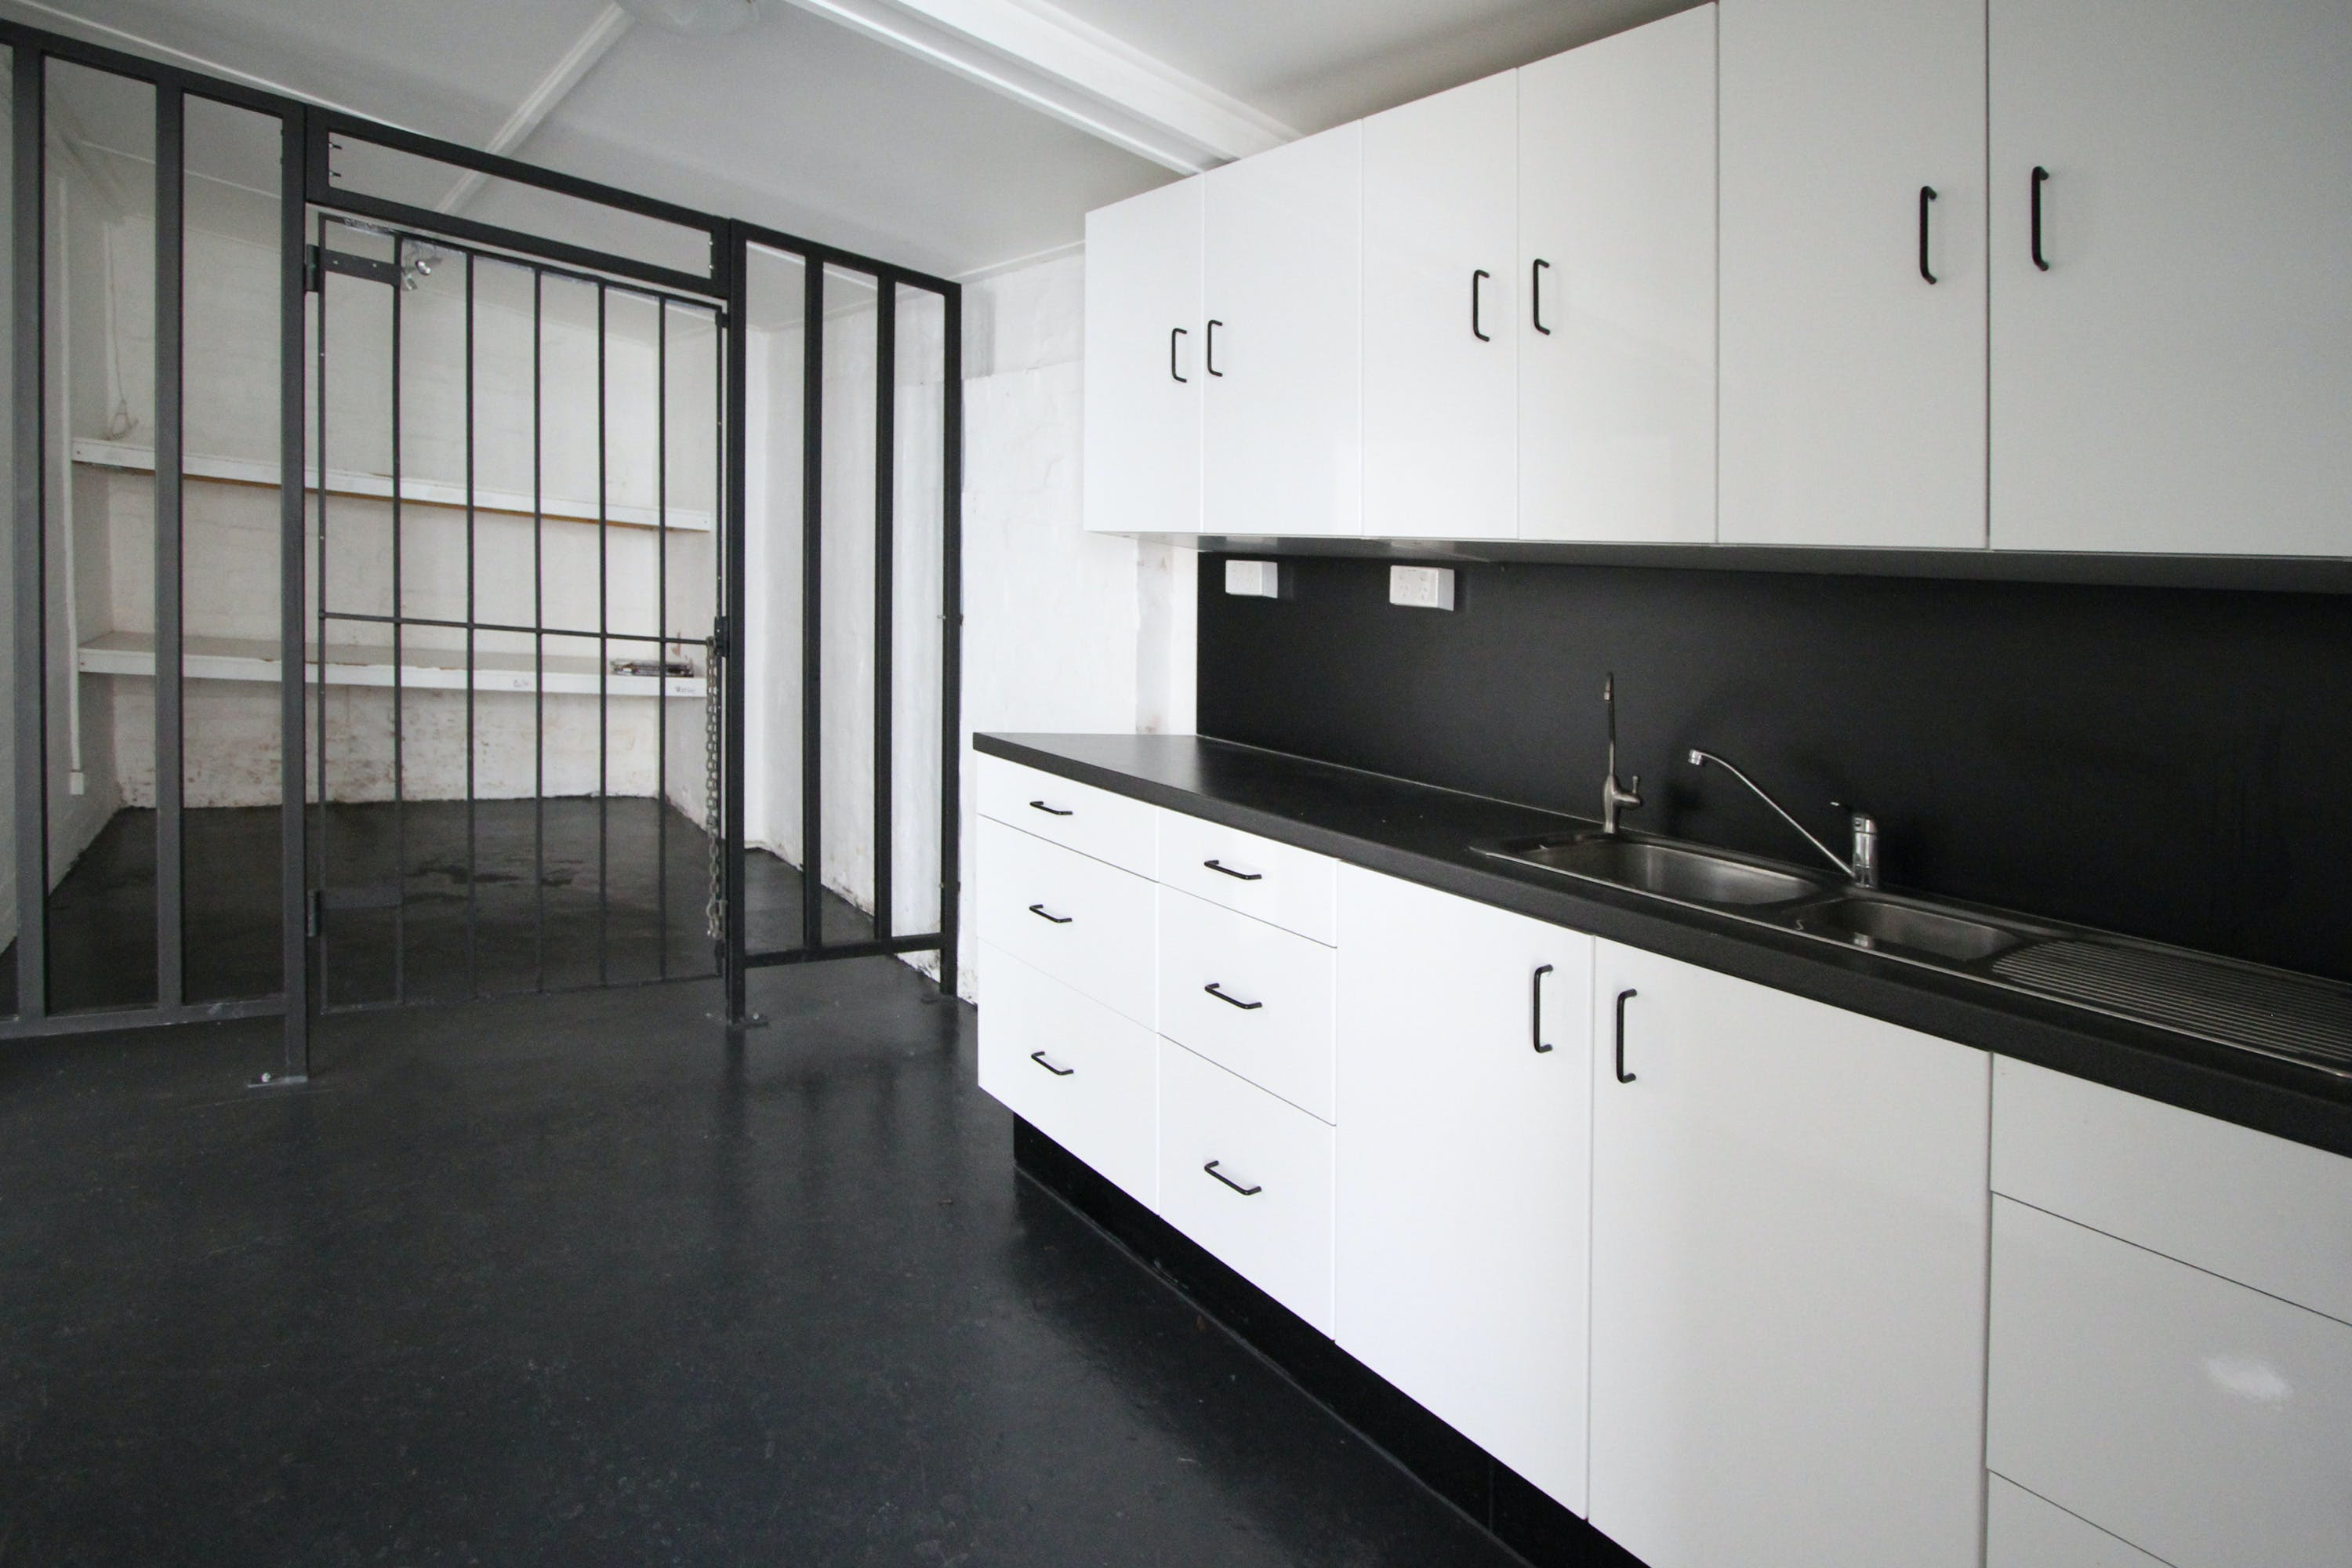 Annexe, multi-use area at Comber Street Studios, image 10